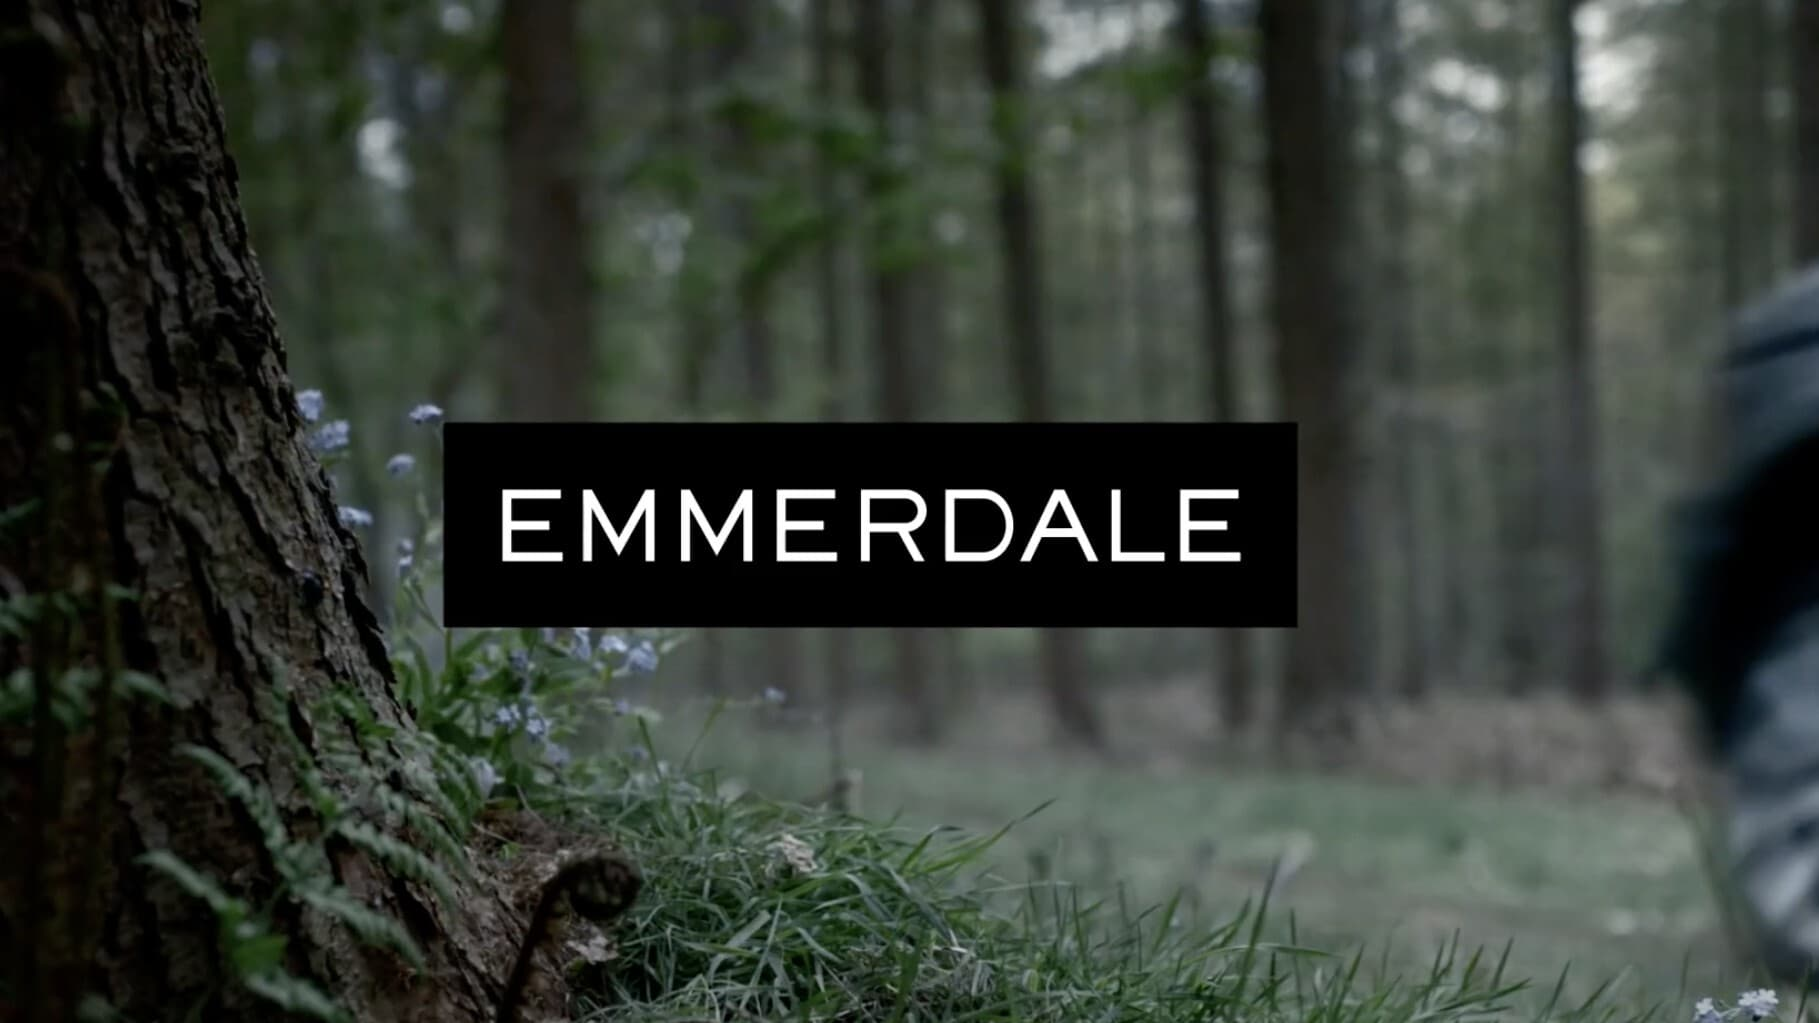 Emmerdale - Season 36 Episode 105 : May 3, 2007